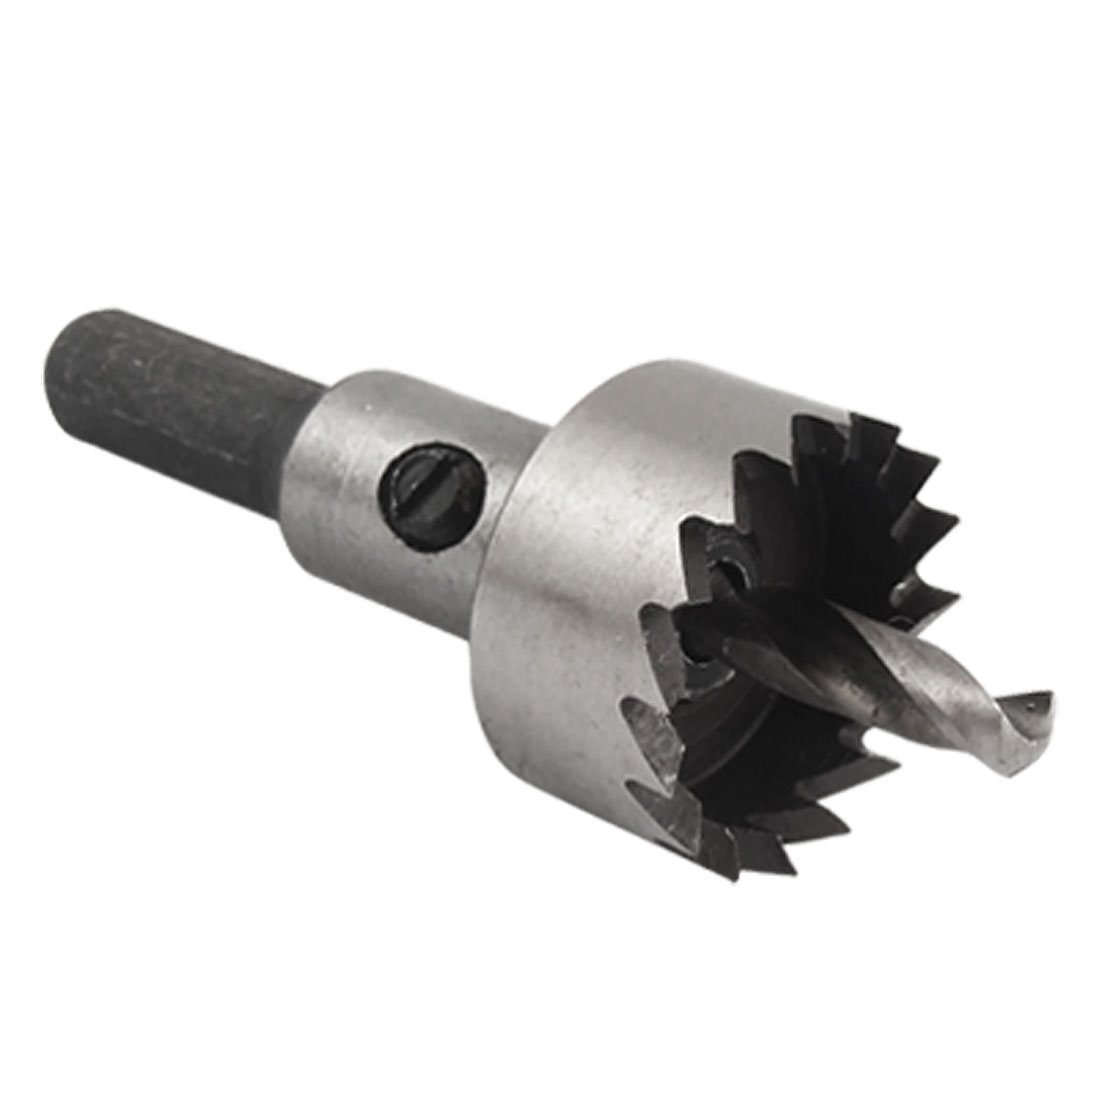 23mm Twist Drill Bit Three Flat Shank Metal Working Hole Saw